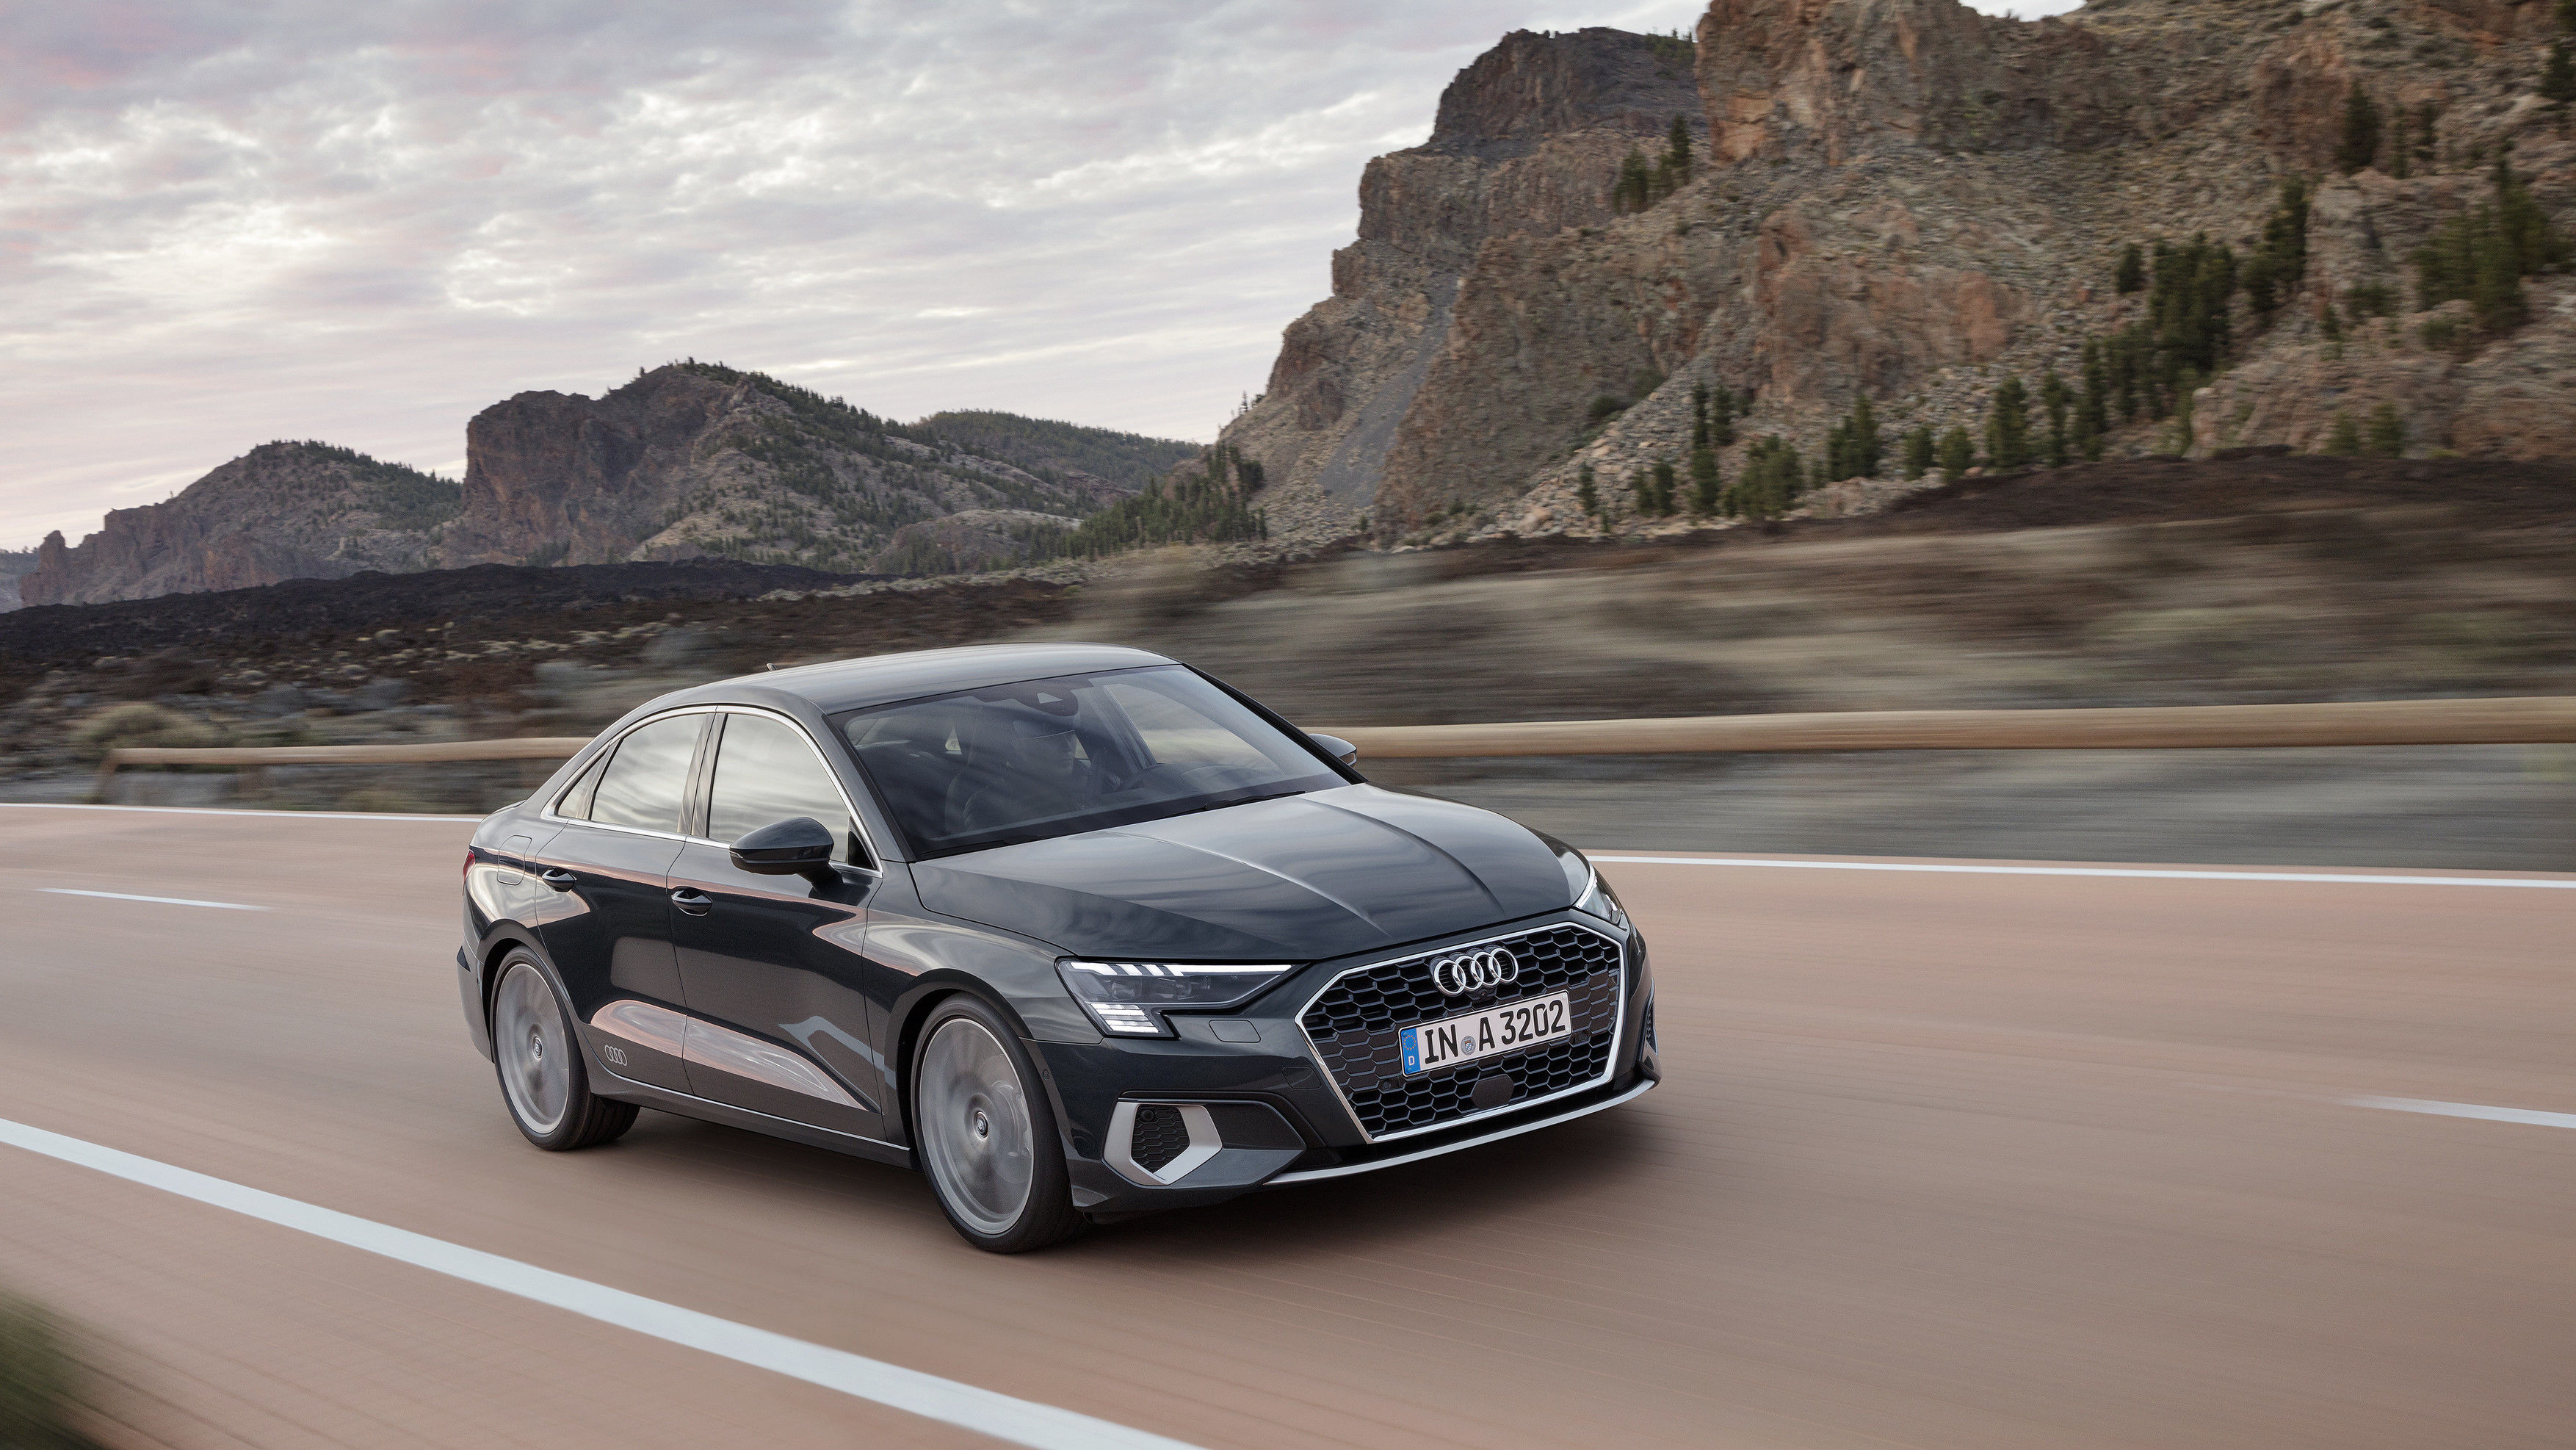 The new Audi A3 will be initially available with a choice of a TFSI petrol engine and a TDI diesel. The 35 TFSI delivers 110 kW/150 hp and is standard paired with a seven-speed S tronic dual-clutch transmission.